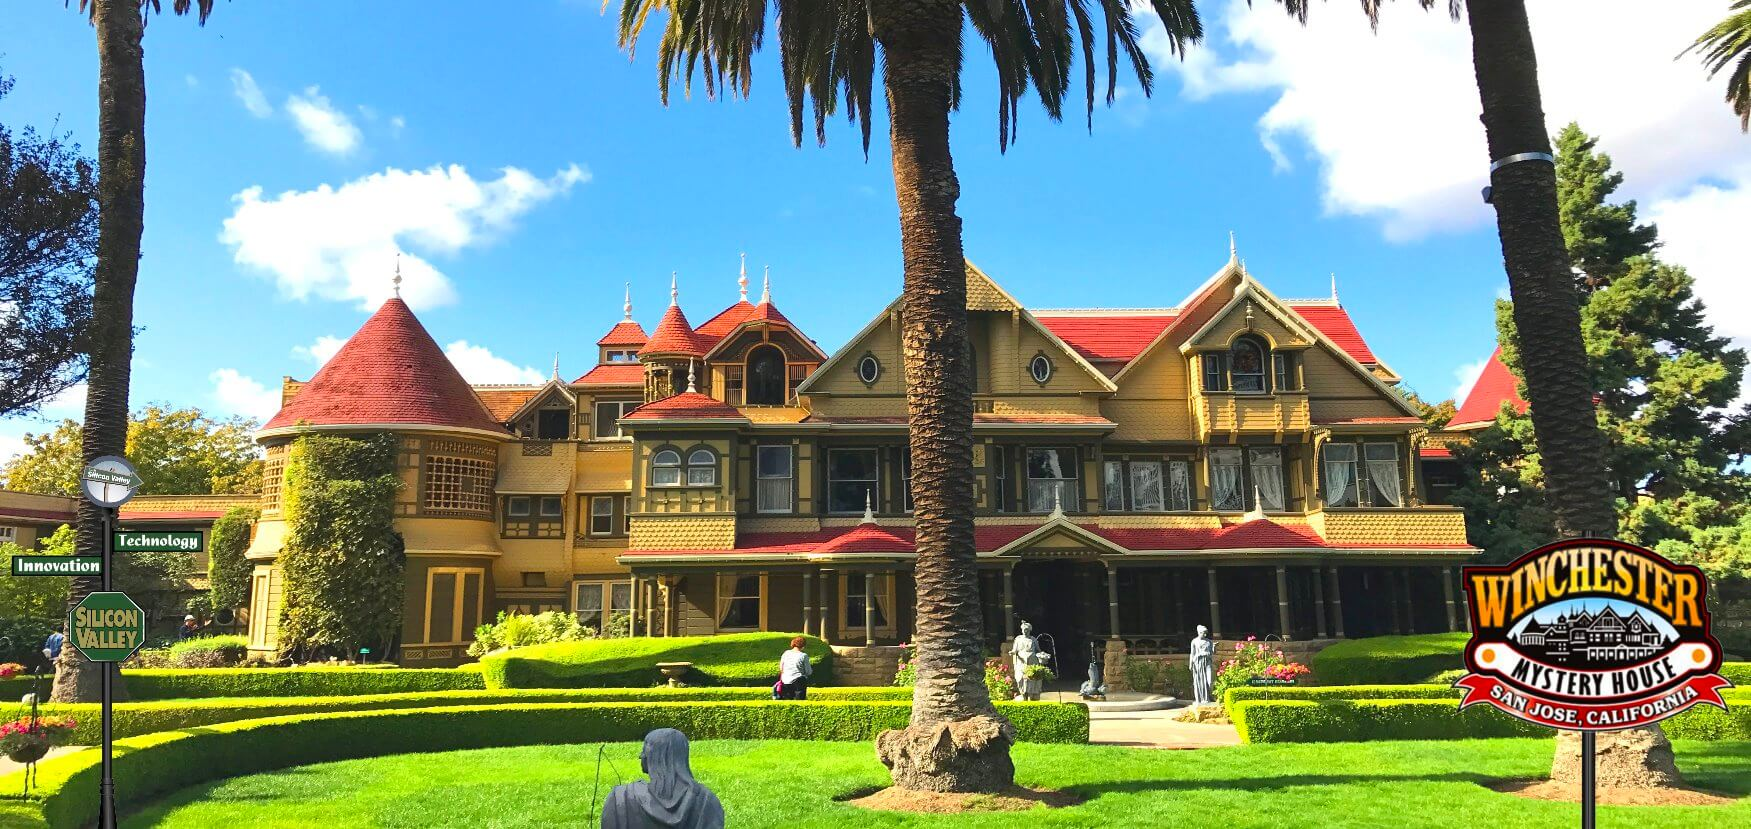 visit_winchester_mystery_house_best_museums_in_san_jose_tour